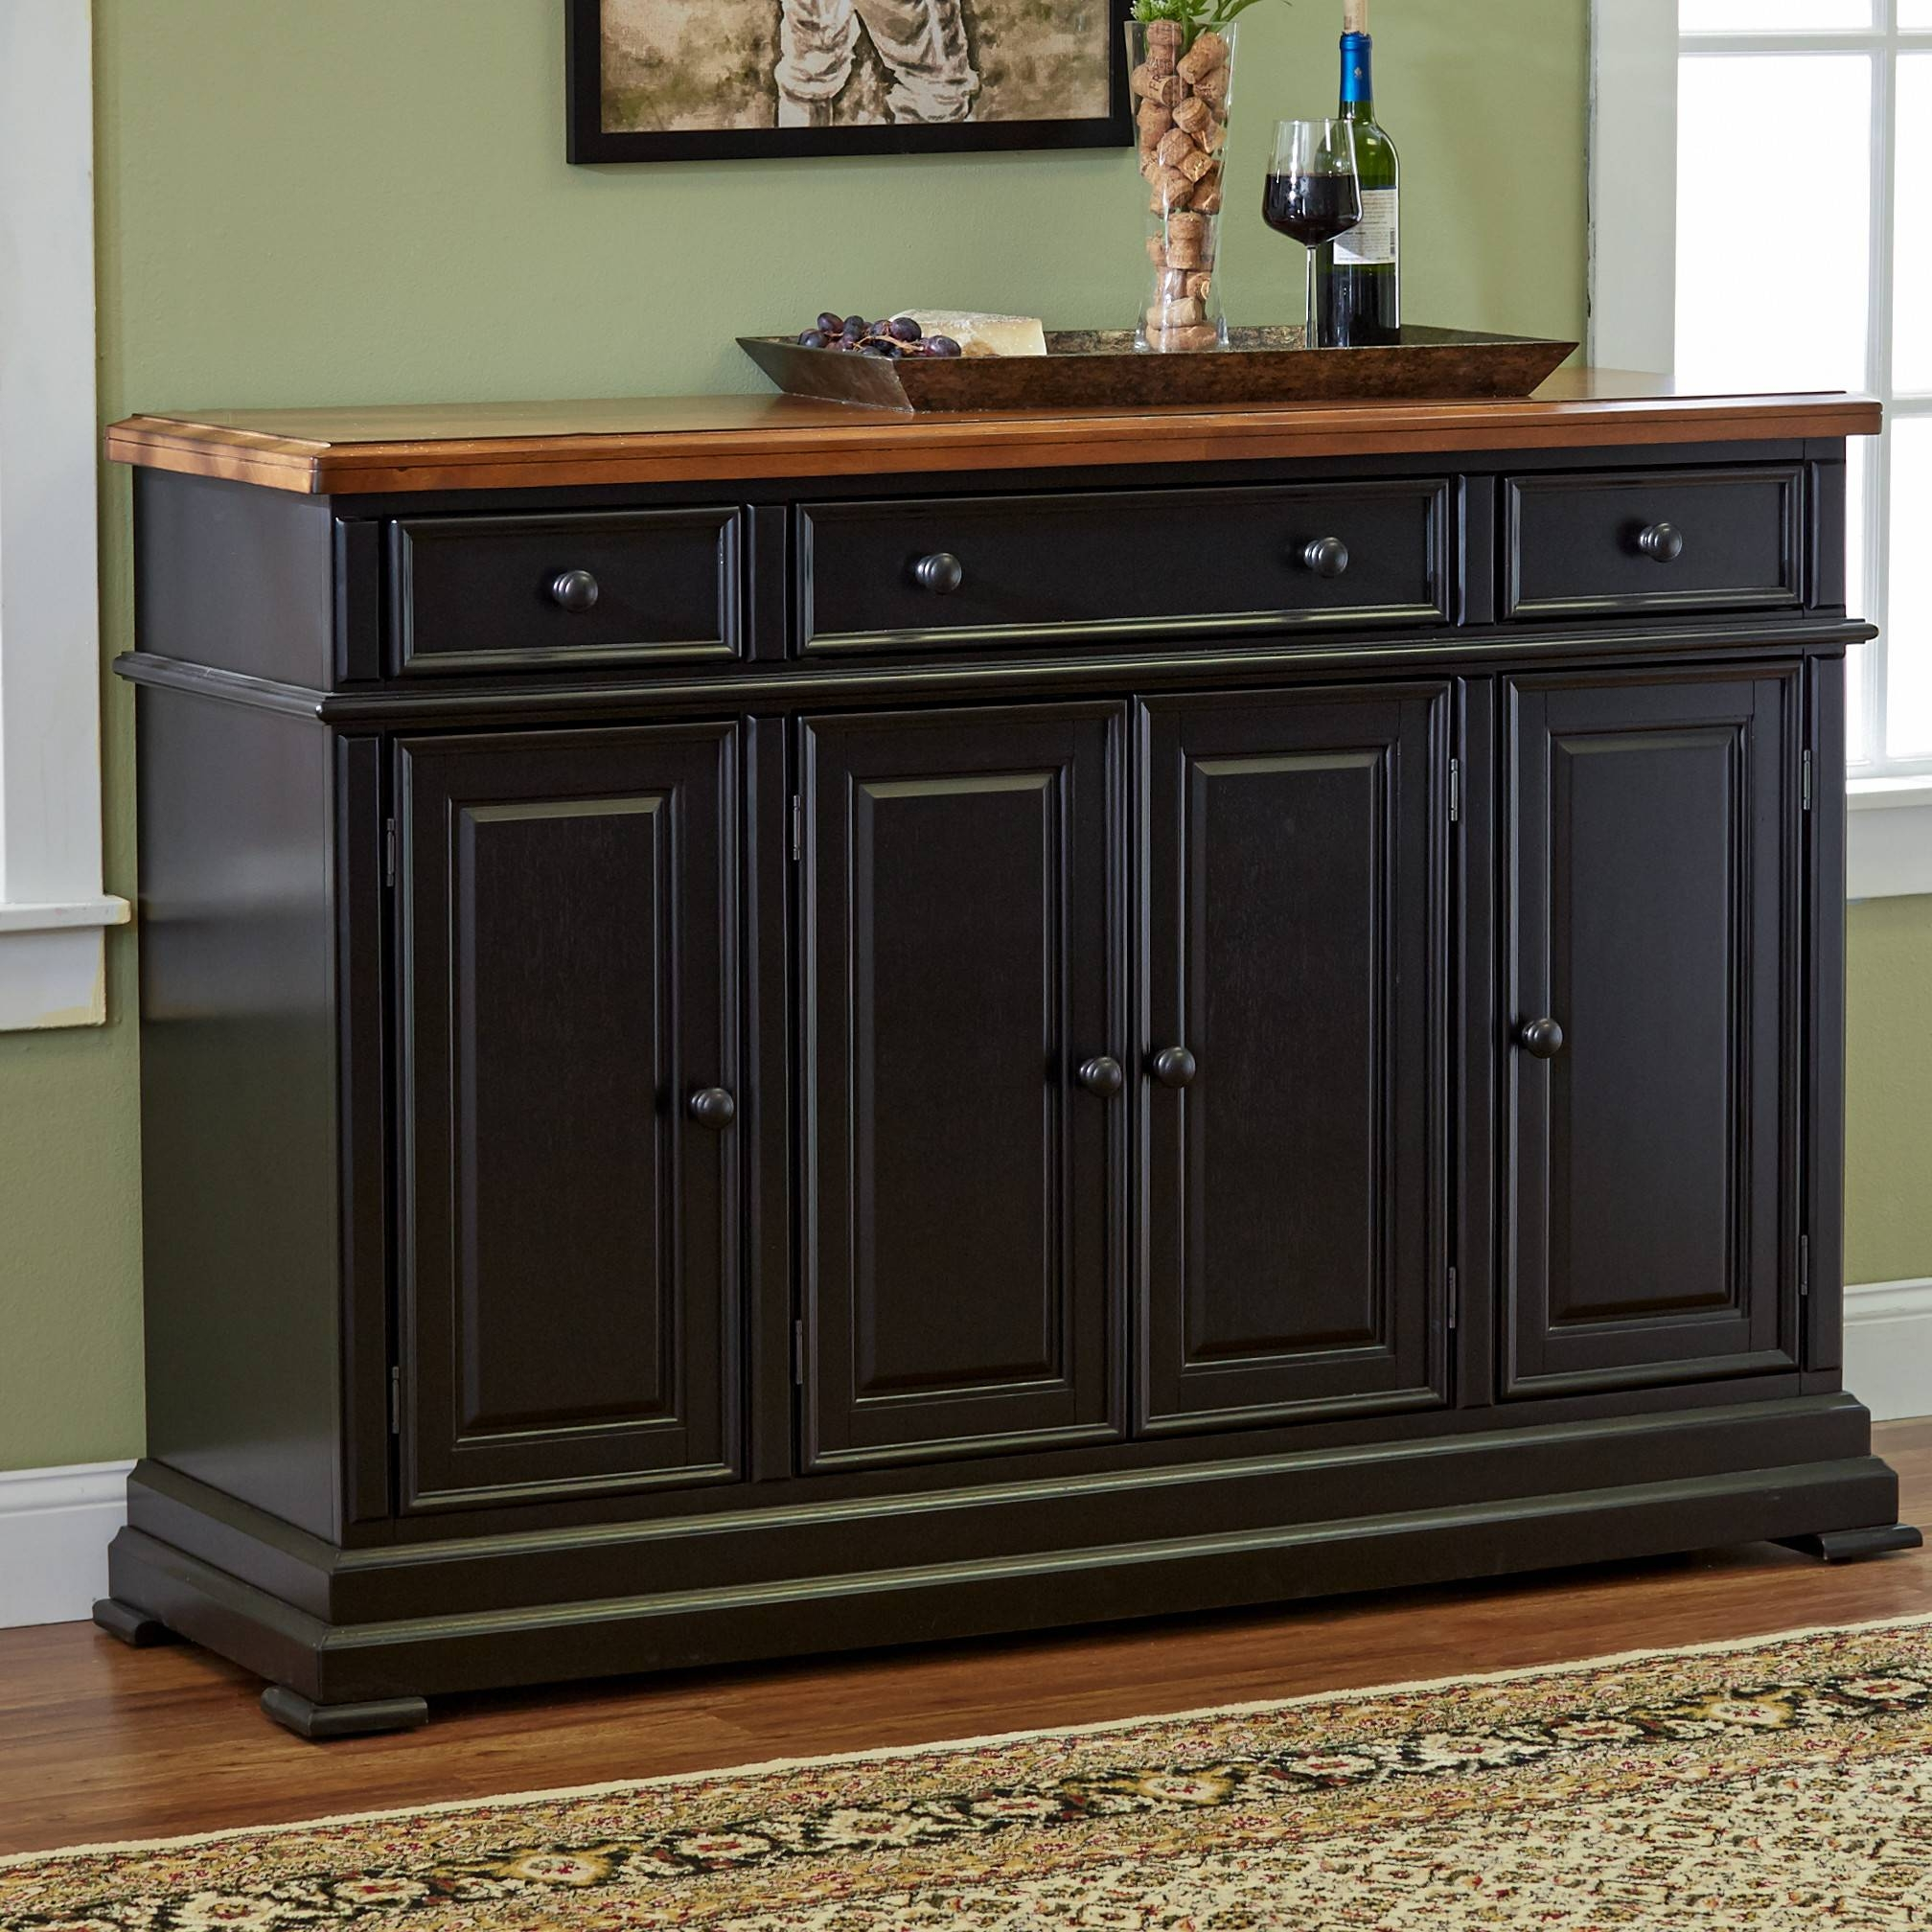 Dining Room Buffet Cabinet Sideboards Buffets Storage Servers 17 for Dining Room Buffets Sideboards (Image 8 of 15)